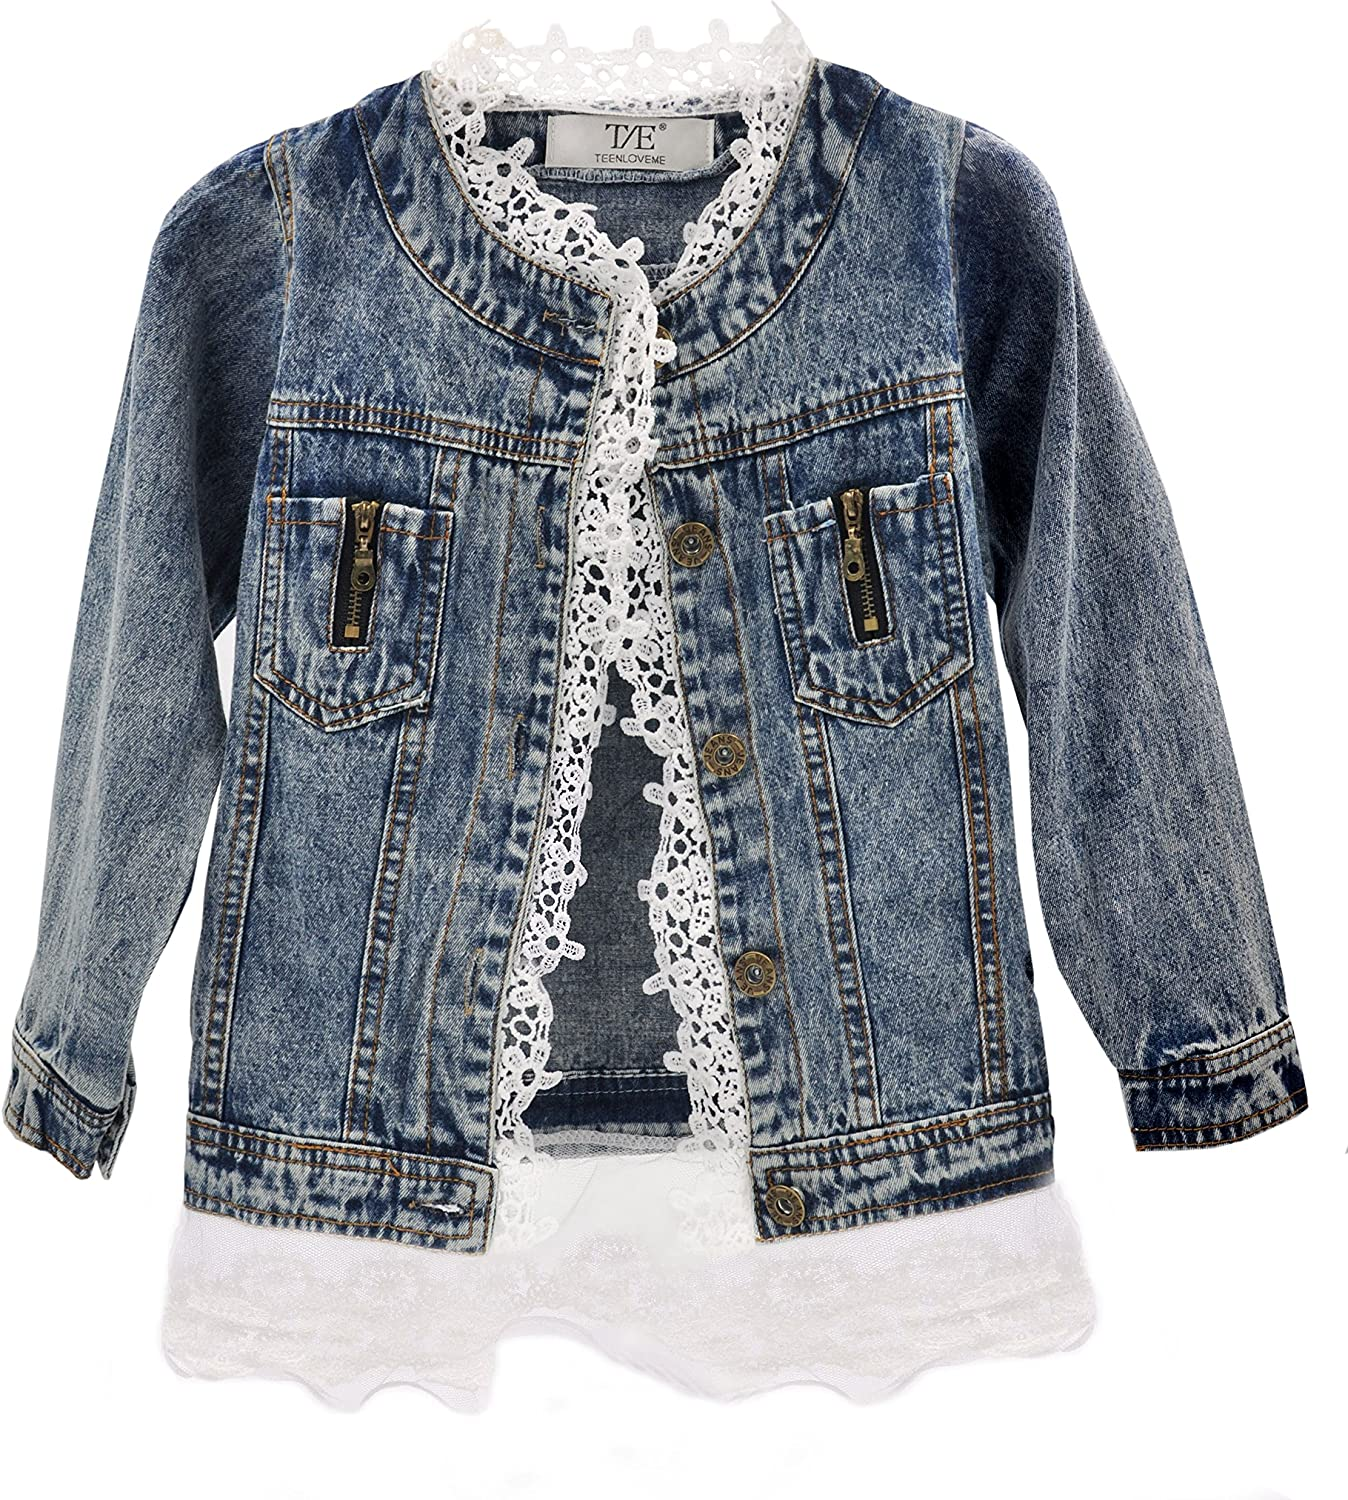 Unisex Kids Toddler Denim Jacket Casual Button Jean Jacket Fall Coat Clothes Top